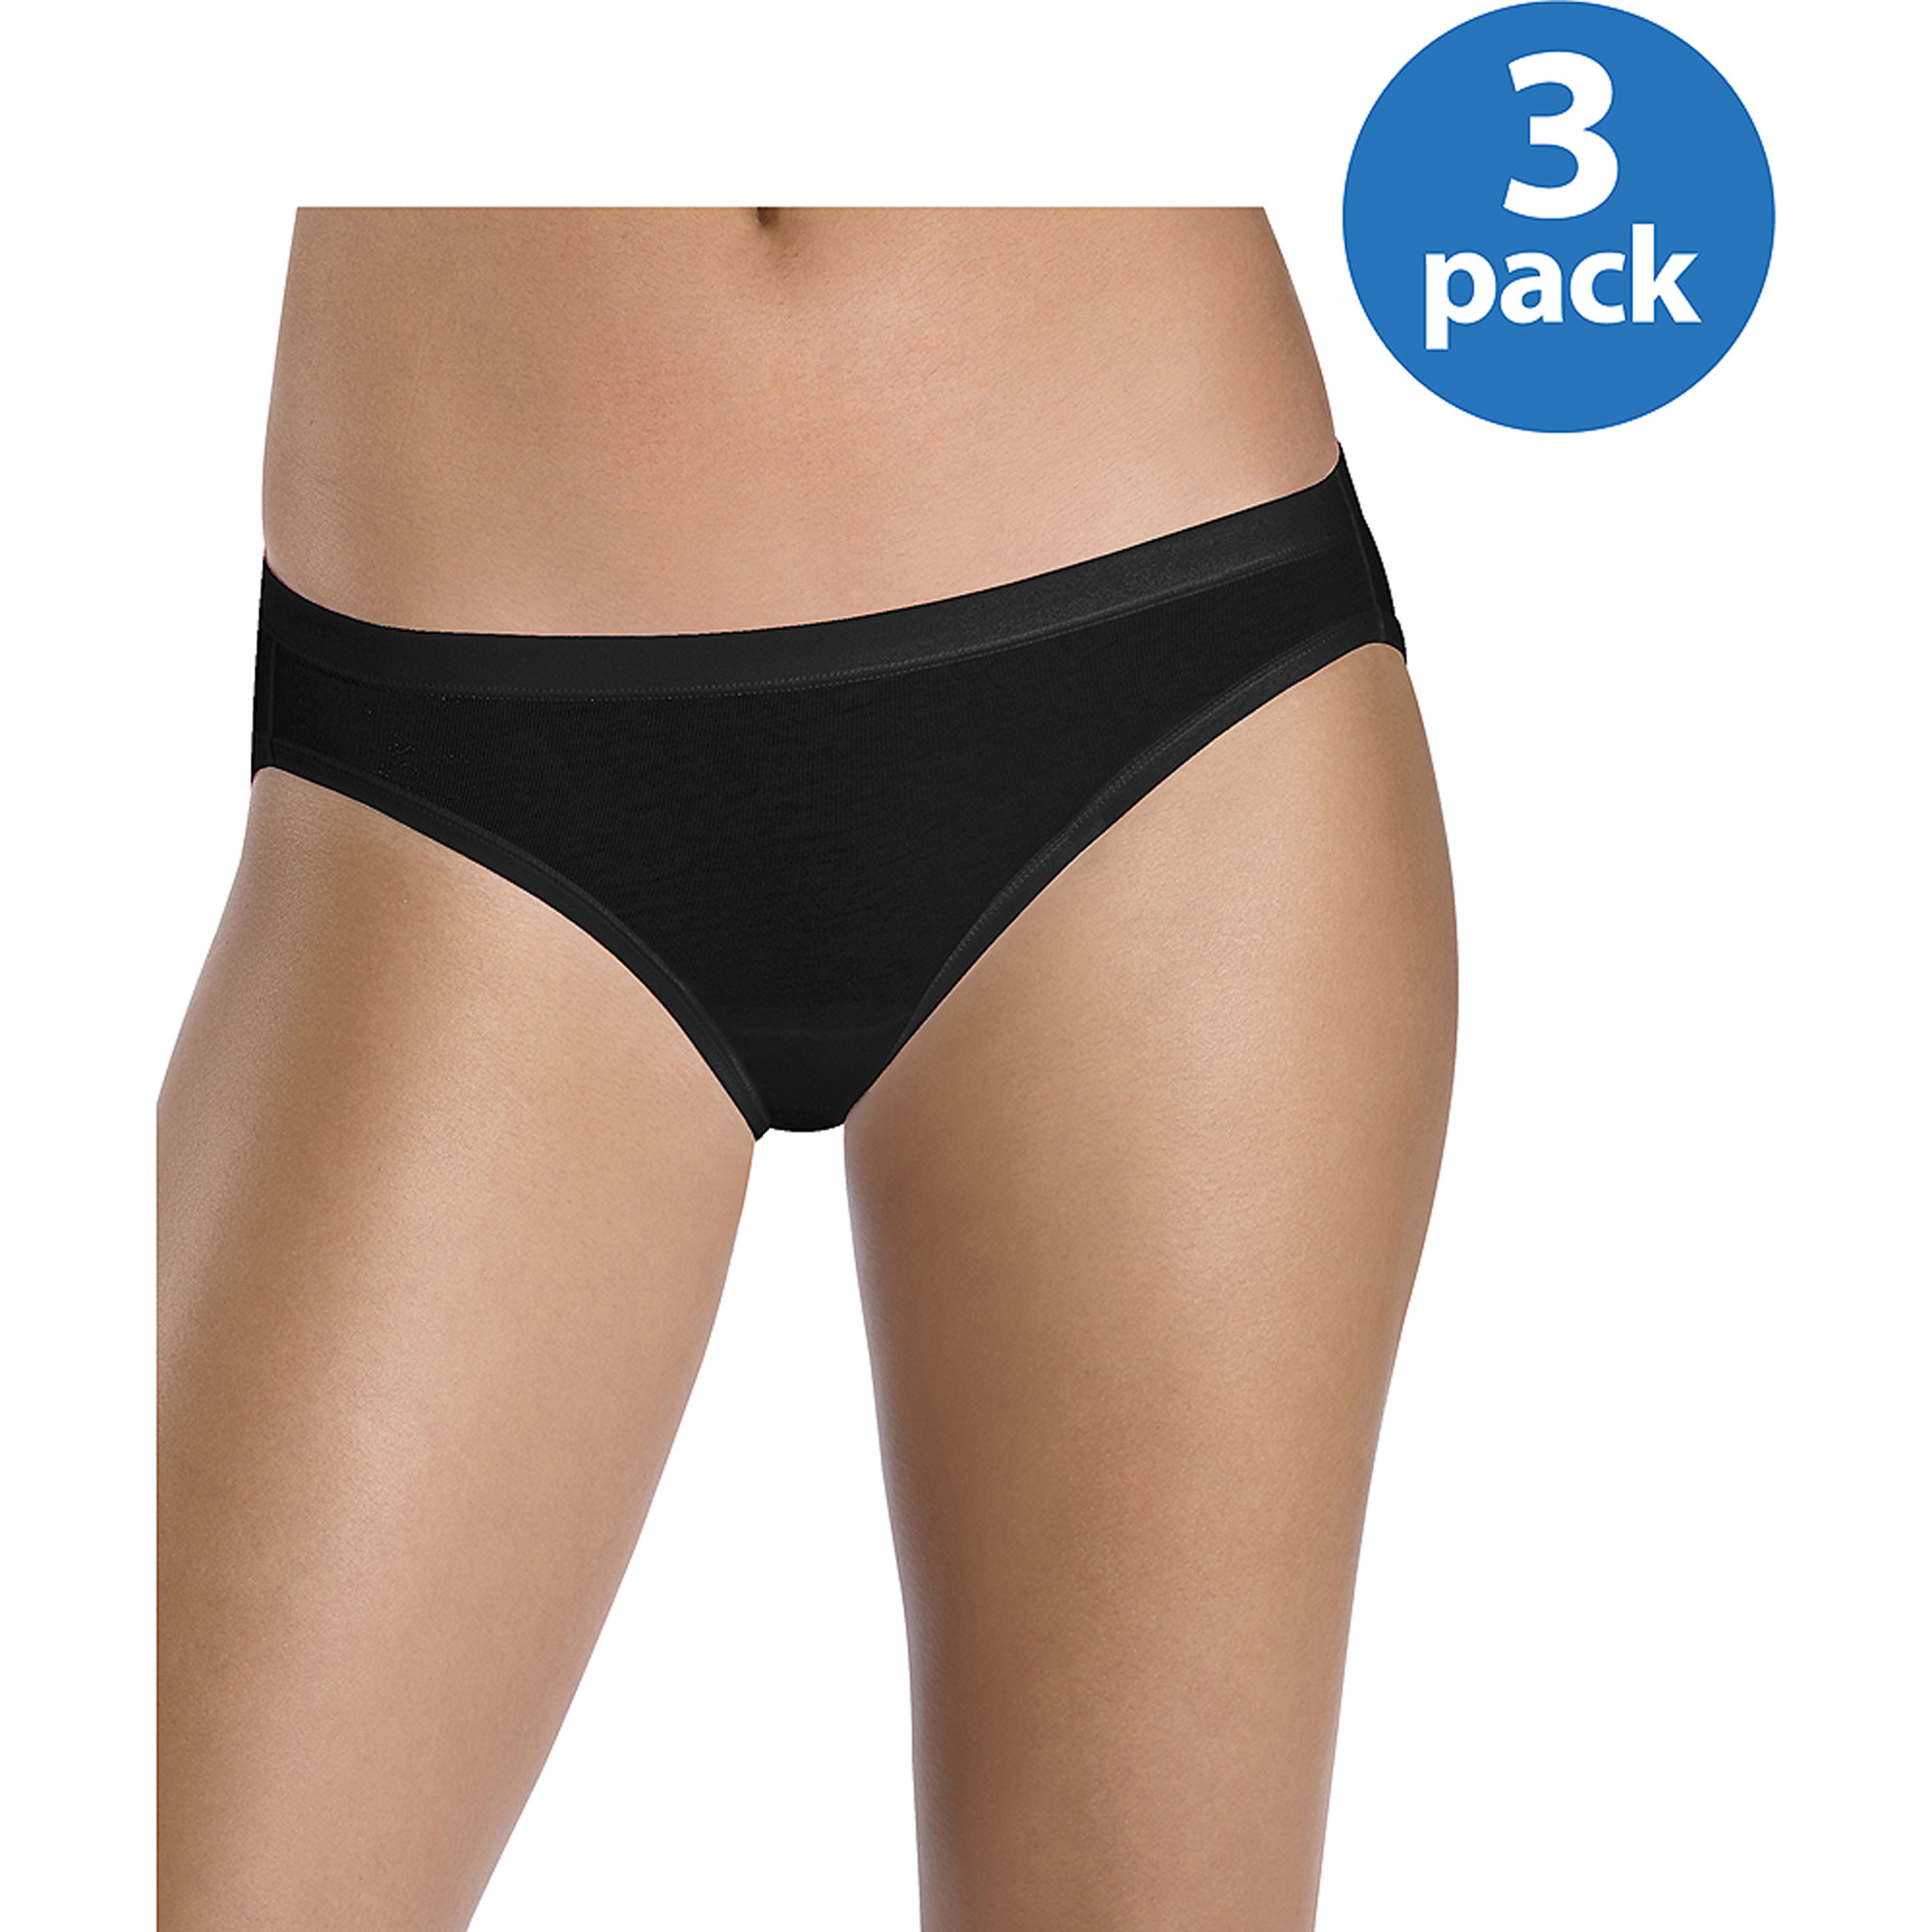 Hanes - Women's Assorted Cotton Stretch Bikini Panties, 3-Pack